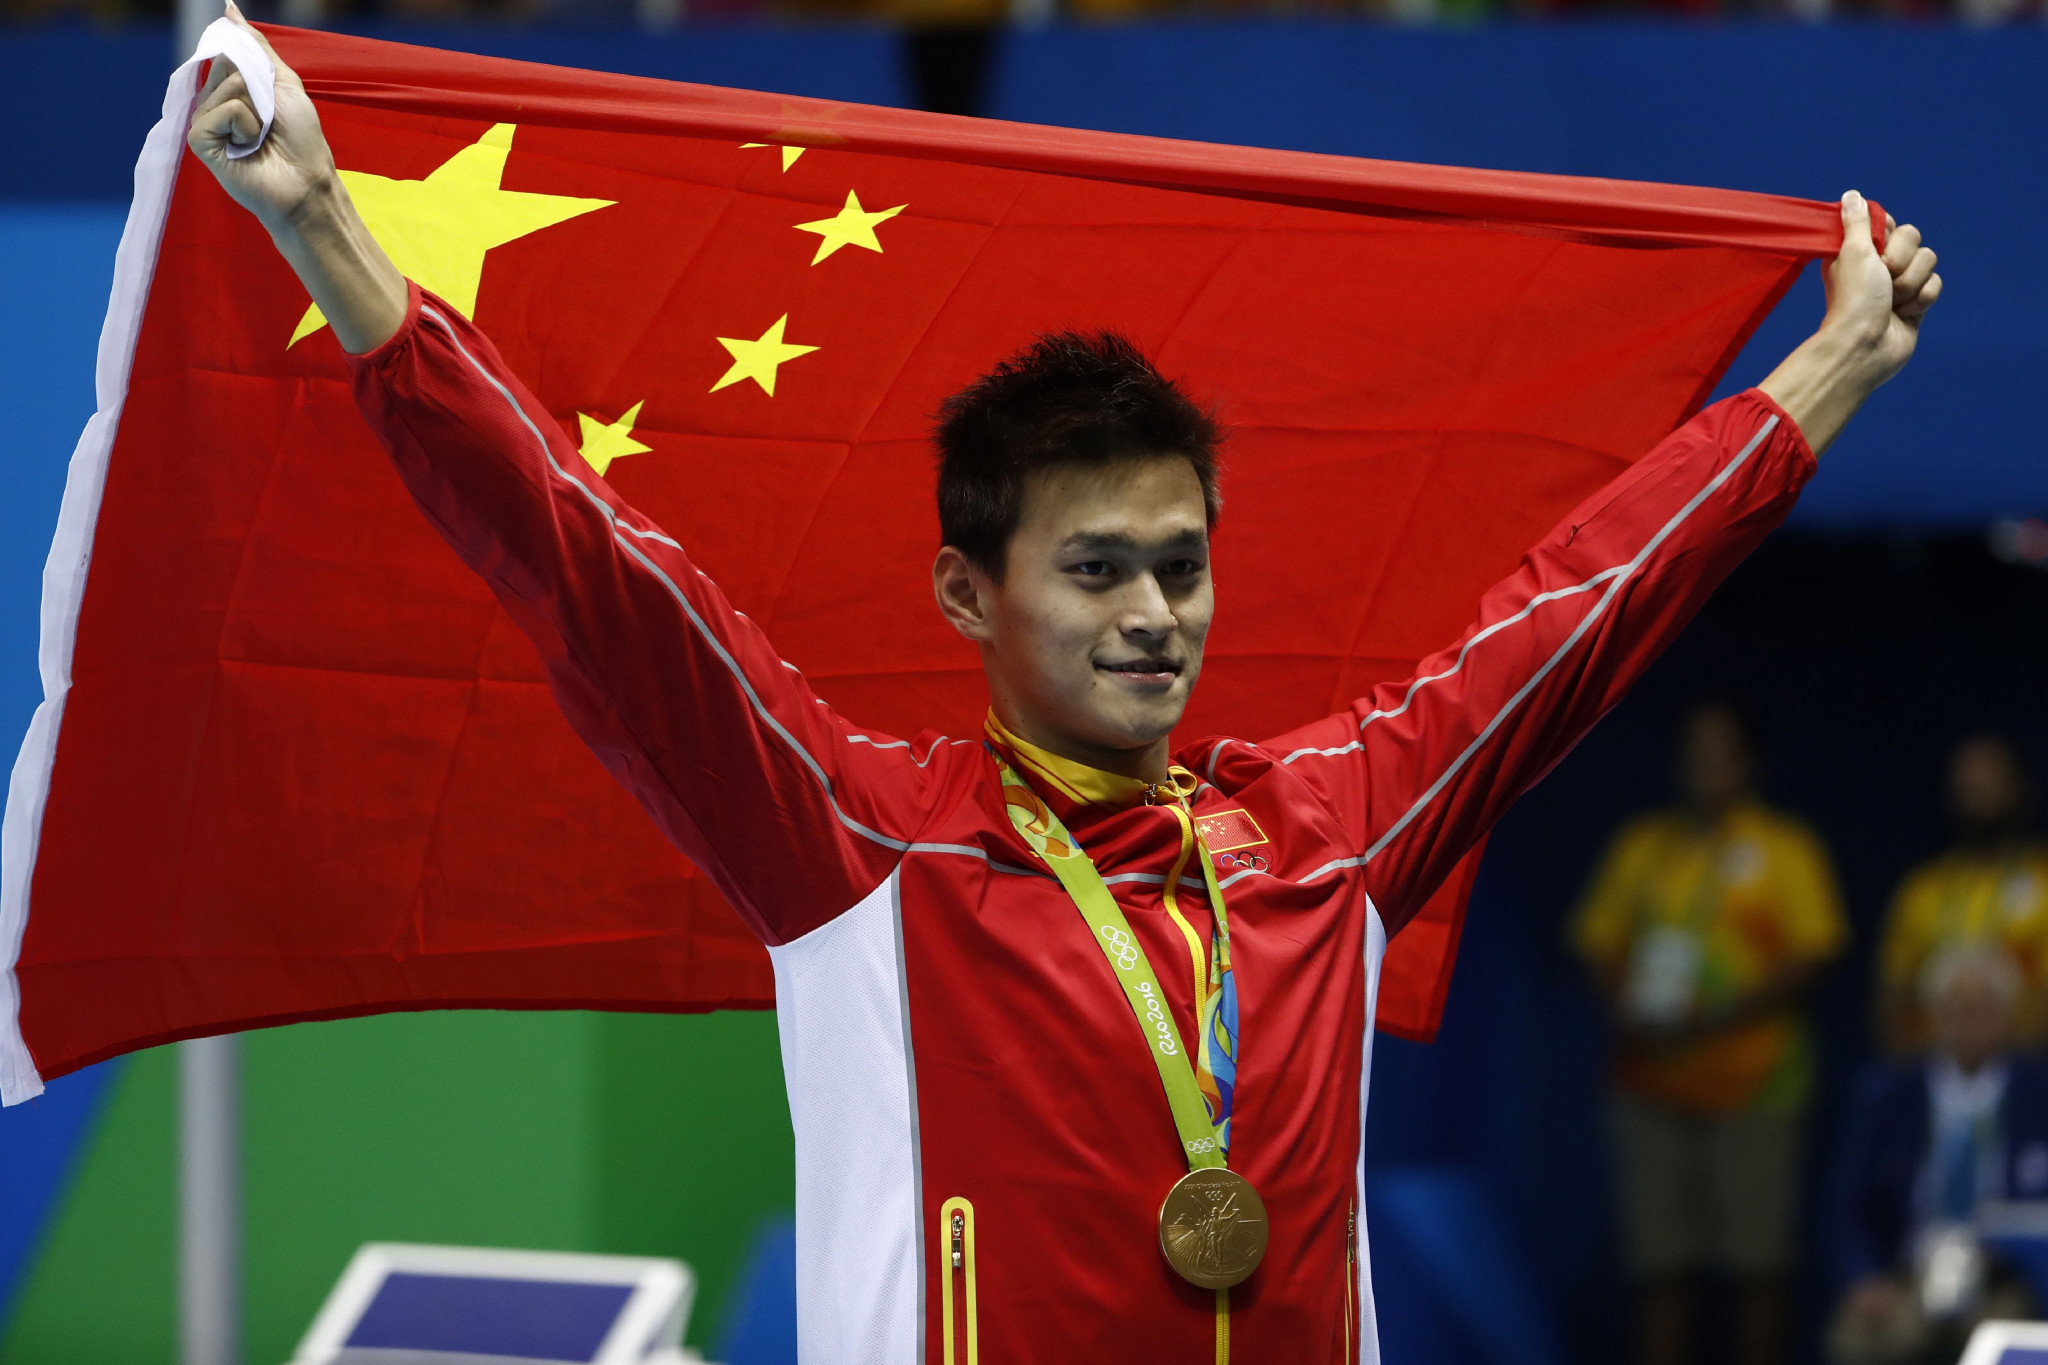 Cornel Marculescu's embrace of convicted doper Sun Yang, above, at Rio 2016 did not go down well with other swimmer and advocates for clean sport ©Getty Images